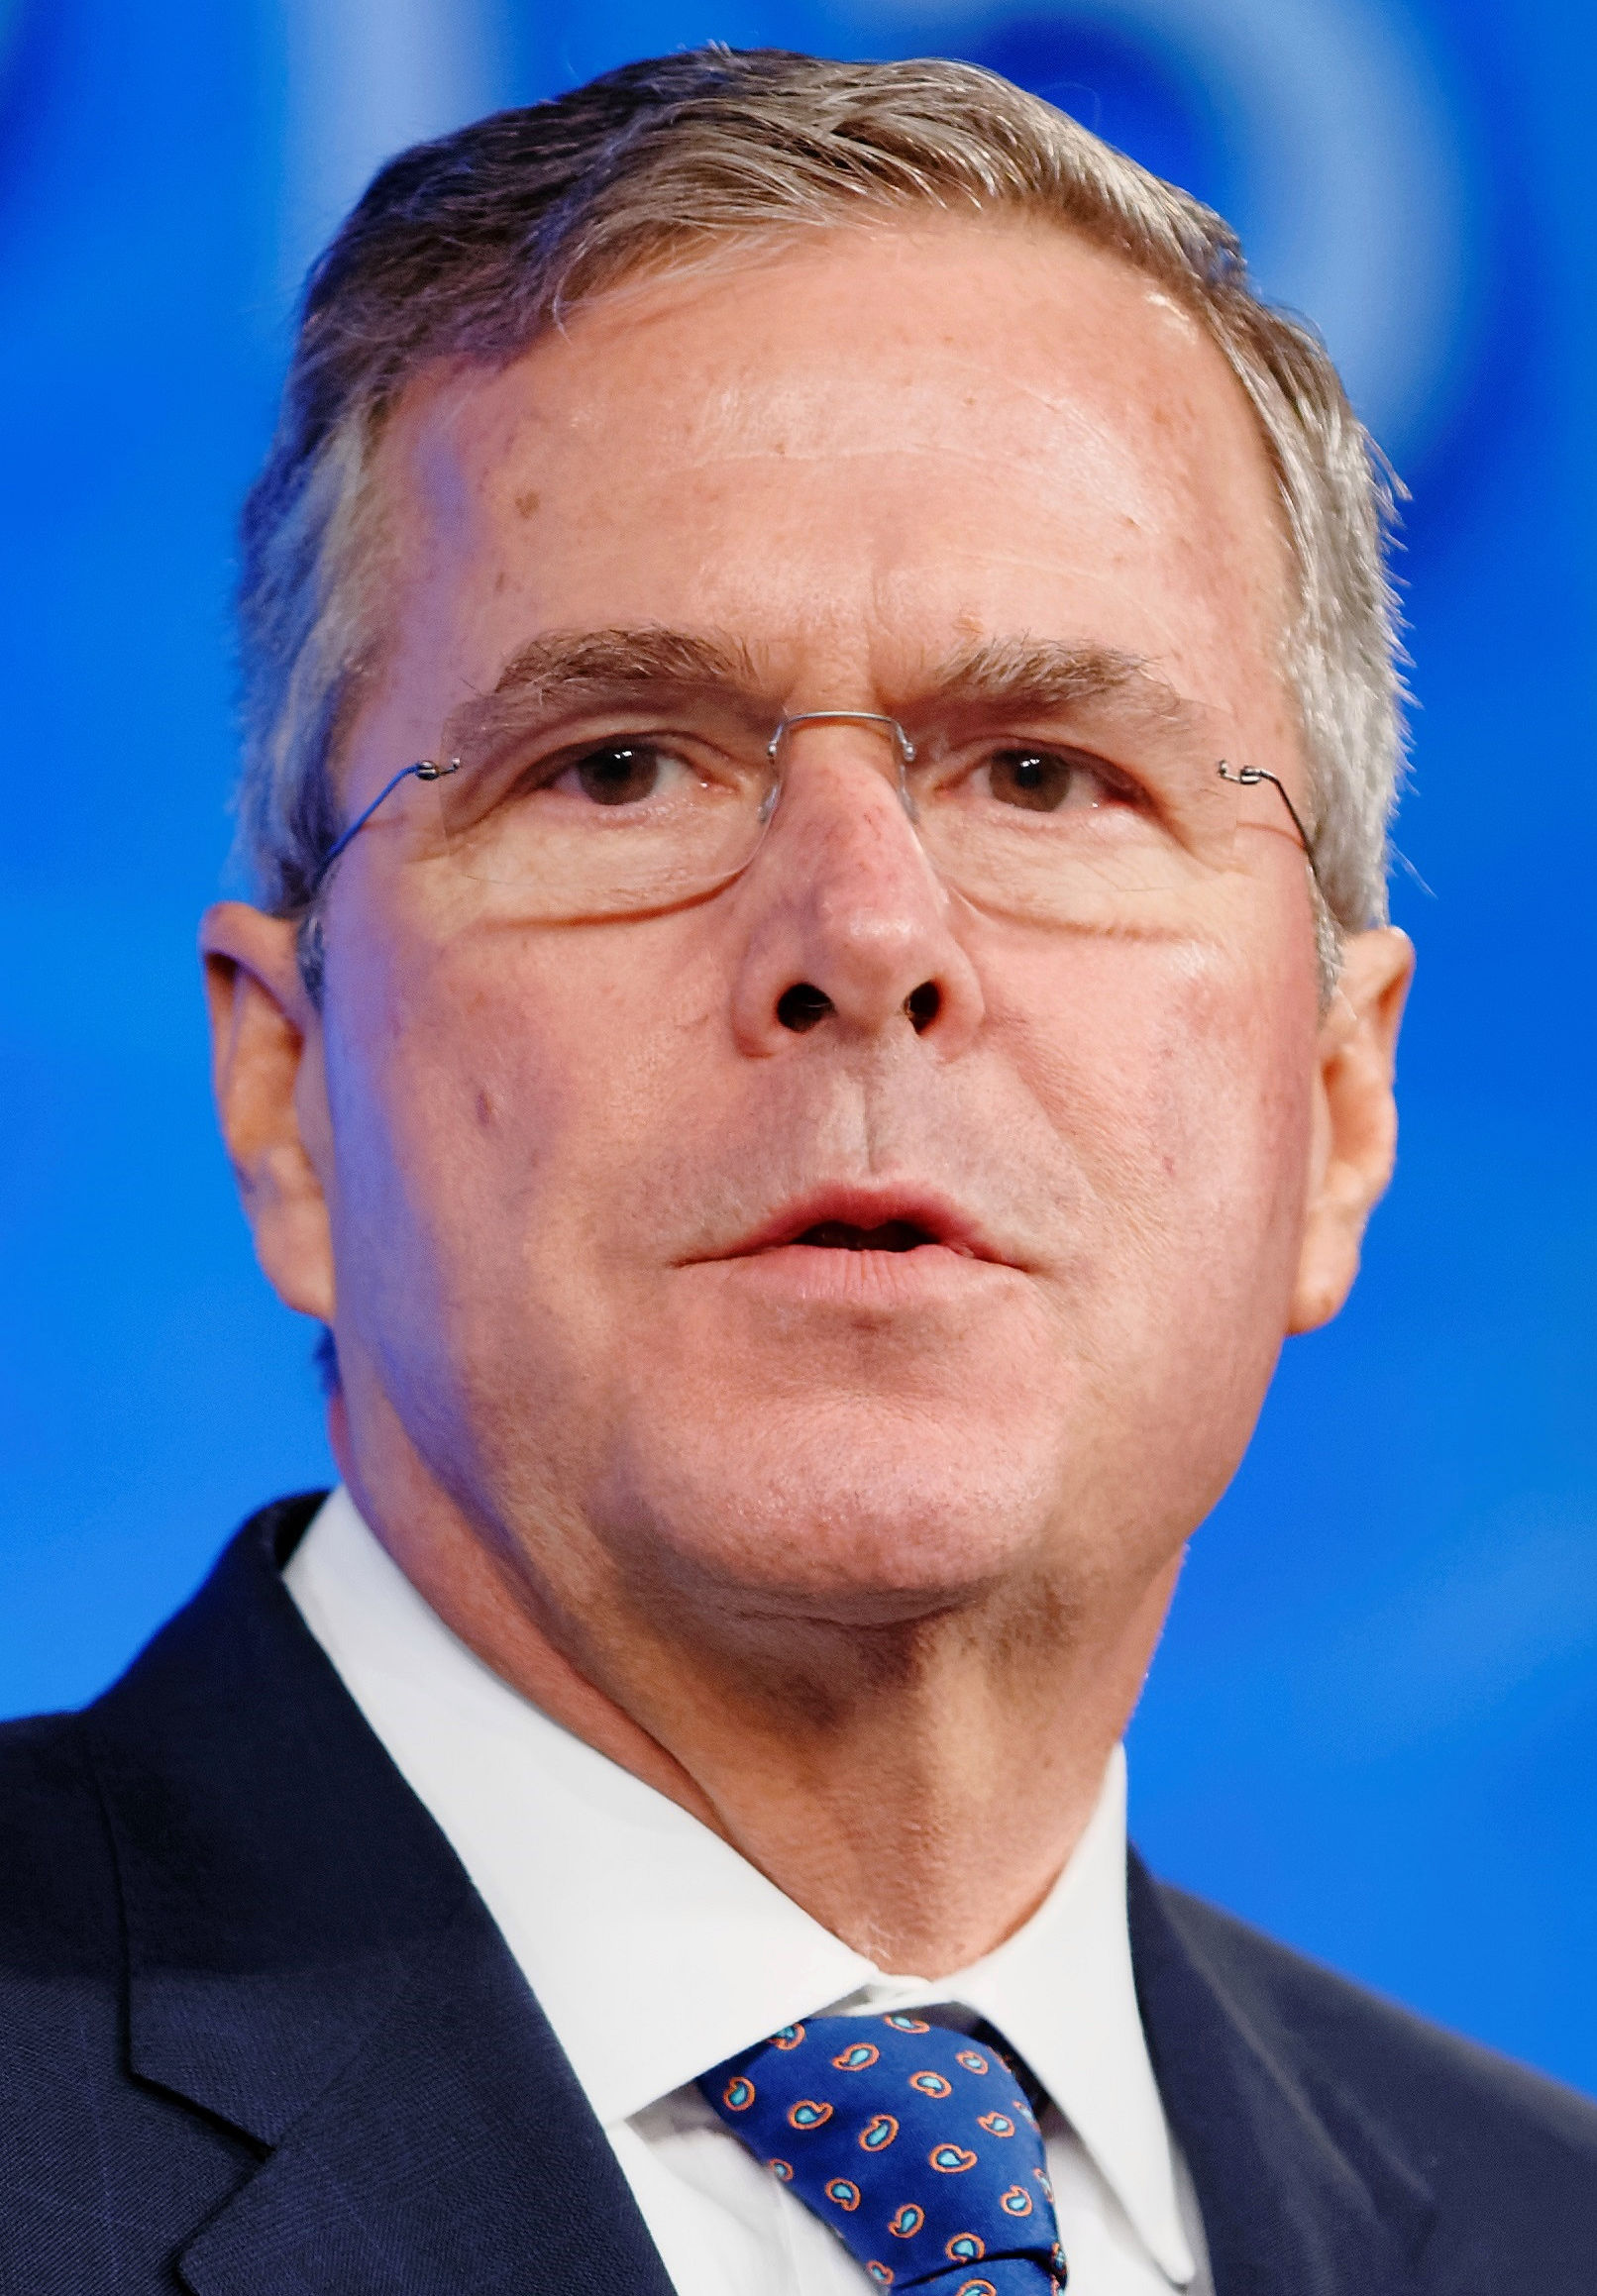 Jeb_Bush_at_Southern_Republican_Leadership_Conference_May_2015_by_Vadon_02